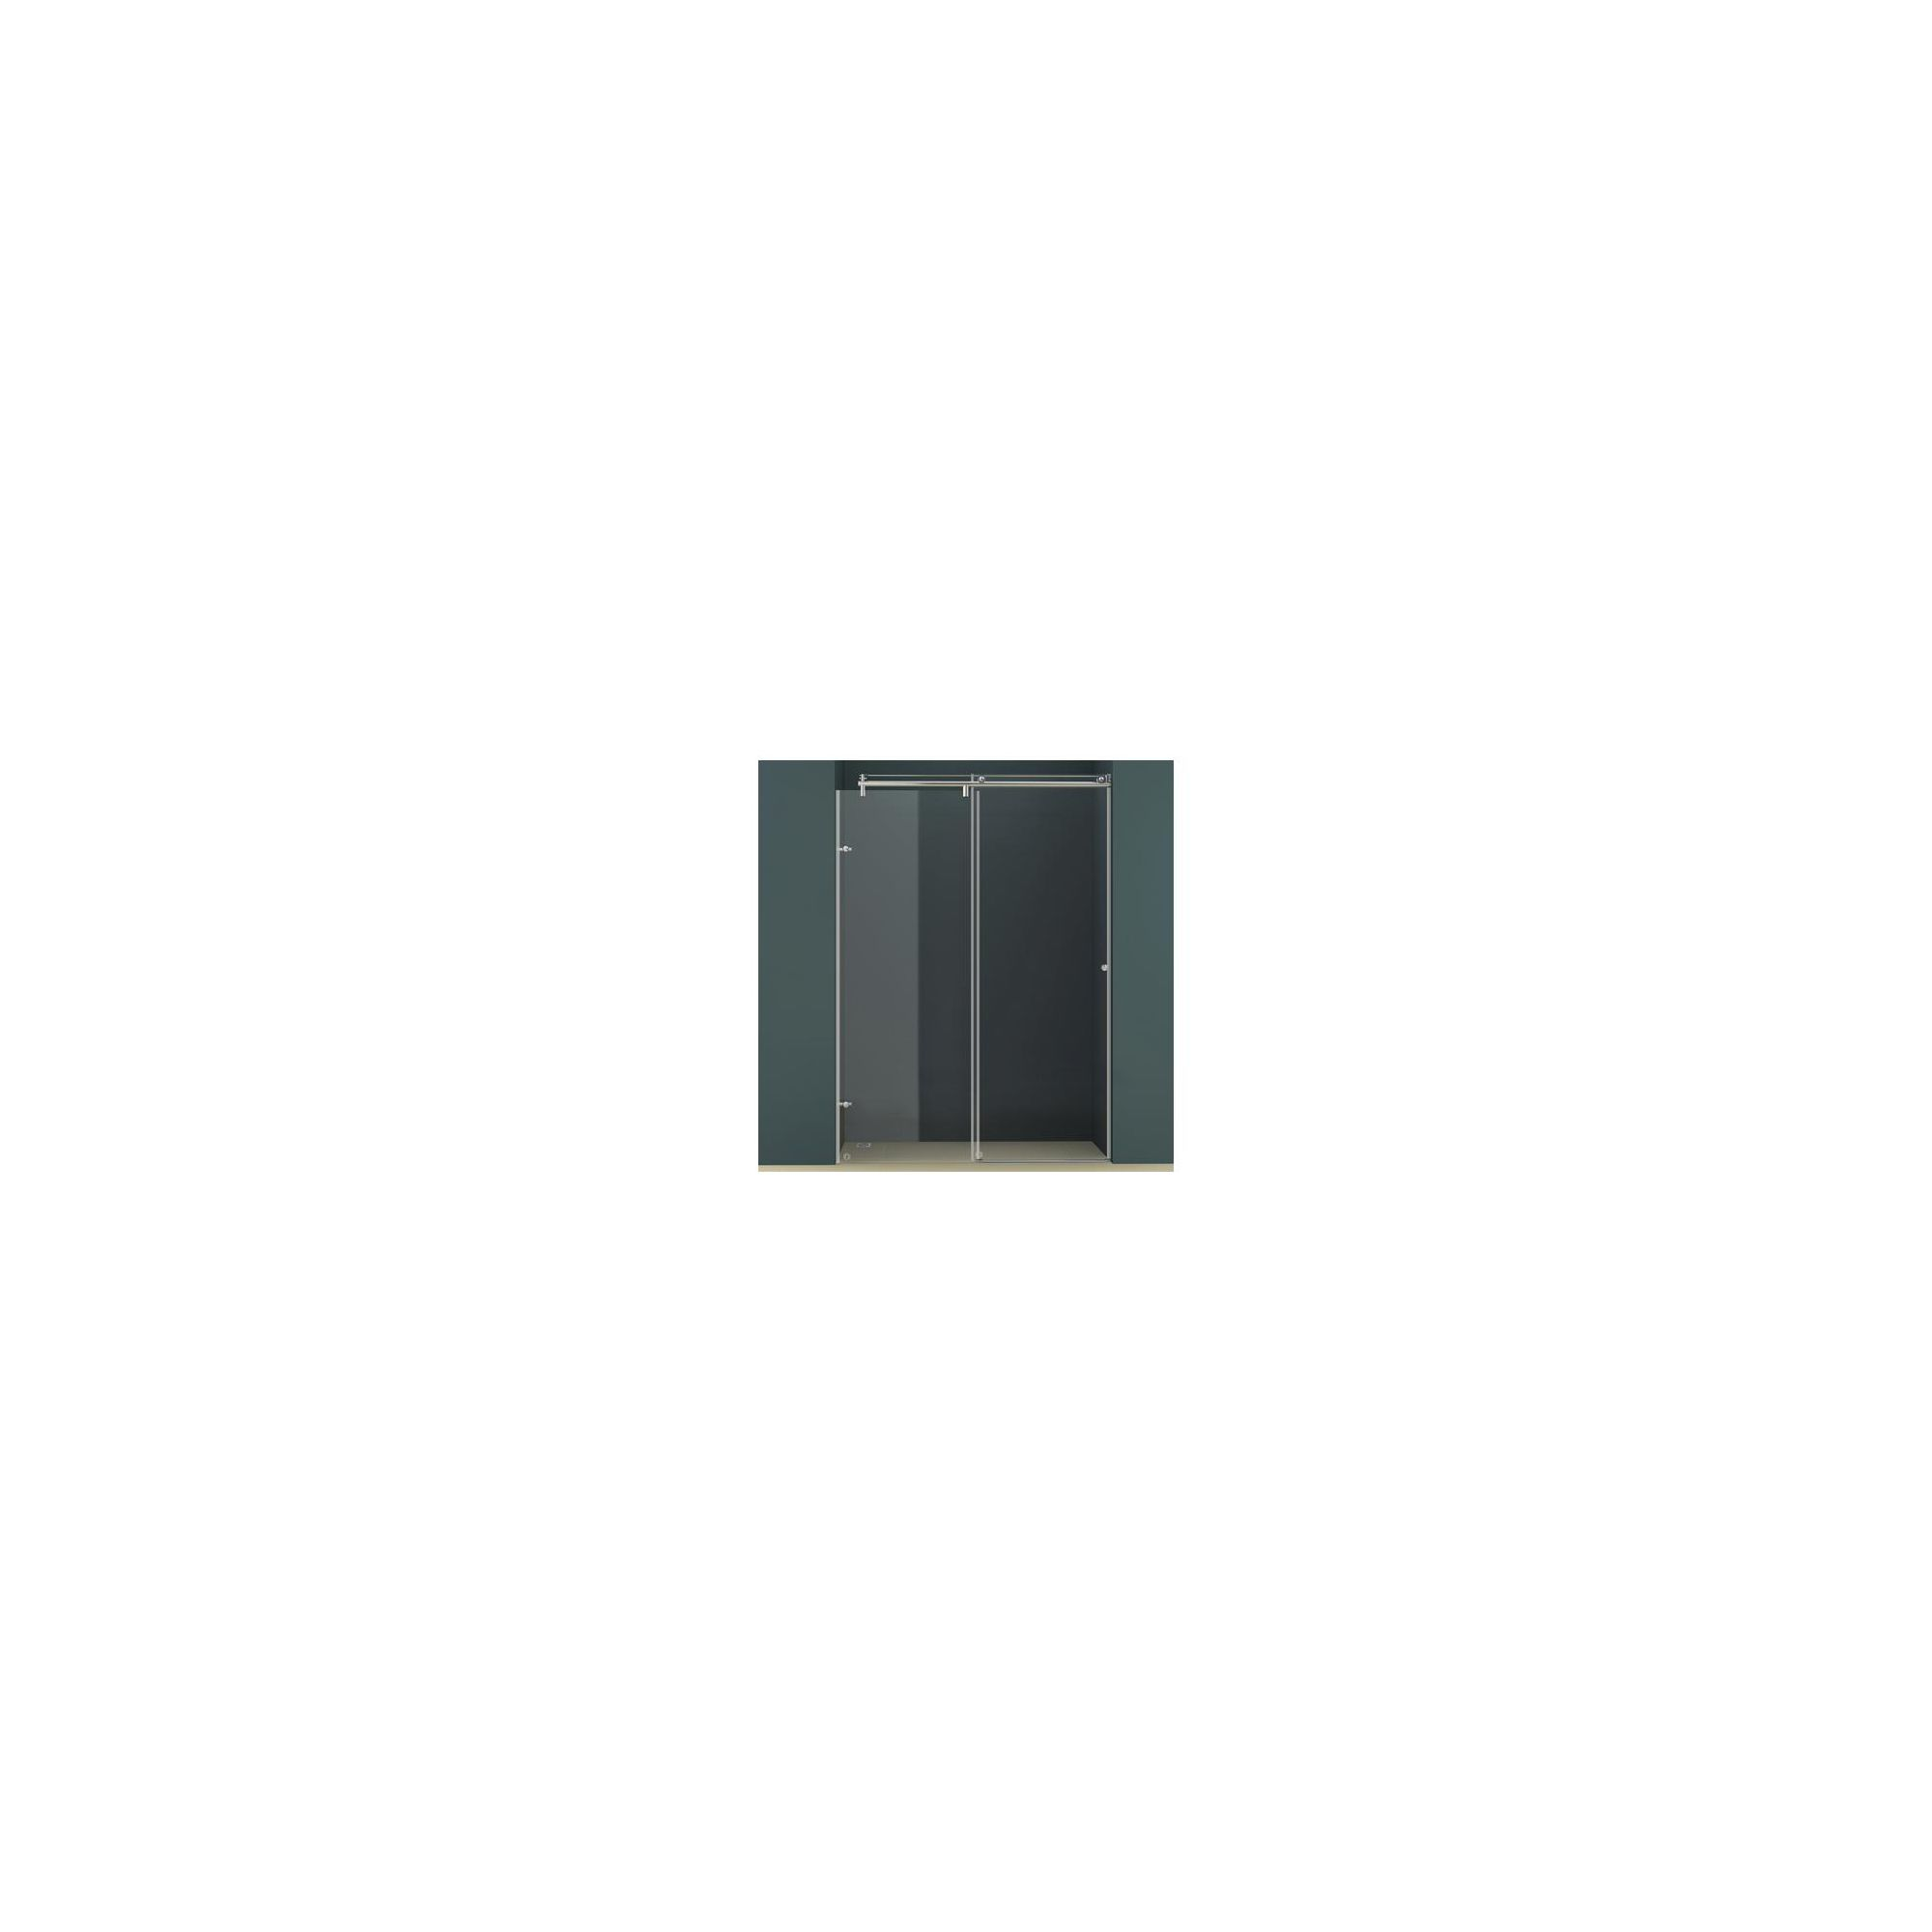 Vessini K Series Sliding Shower Door, 1200mm Wide, 10mm Glass at Tesco Direct